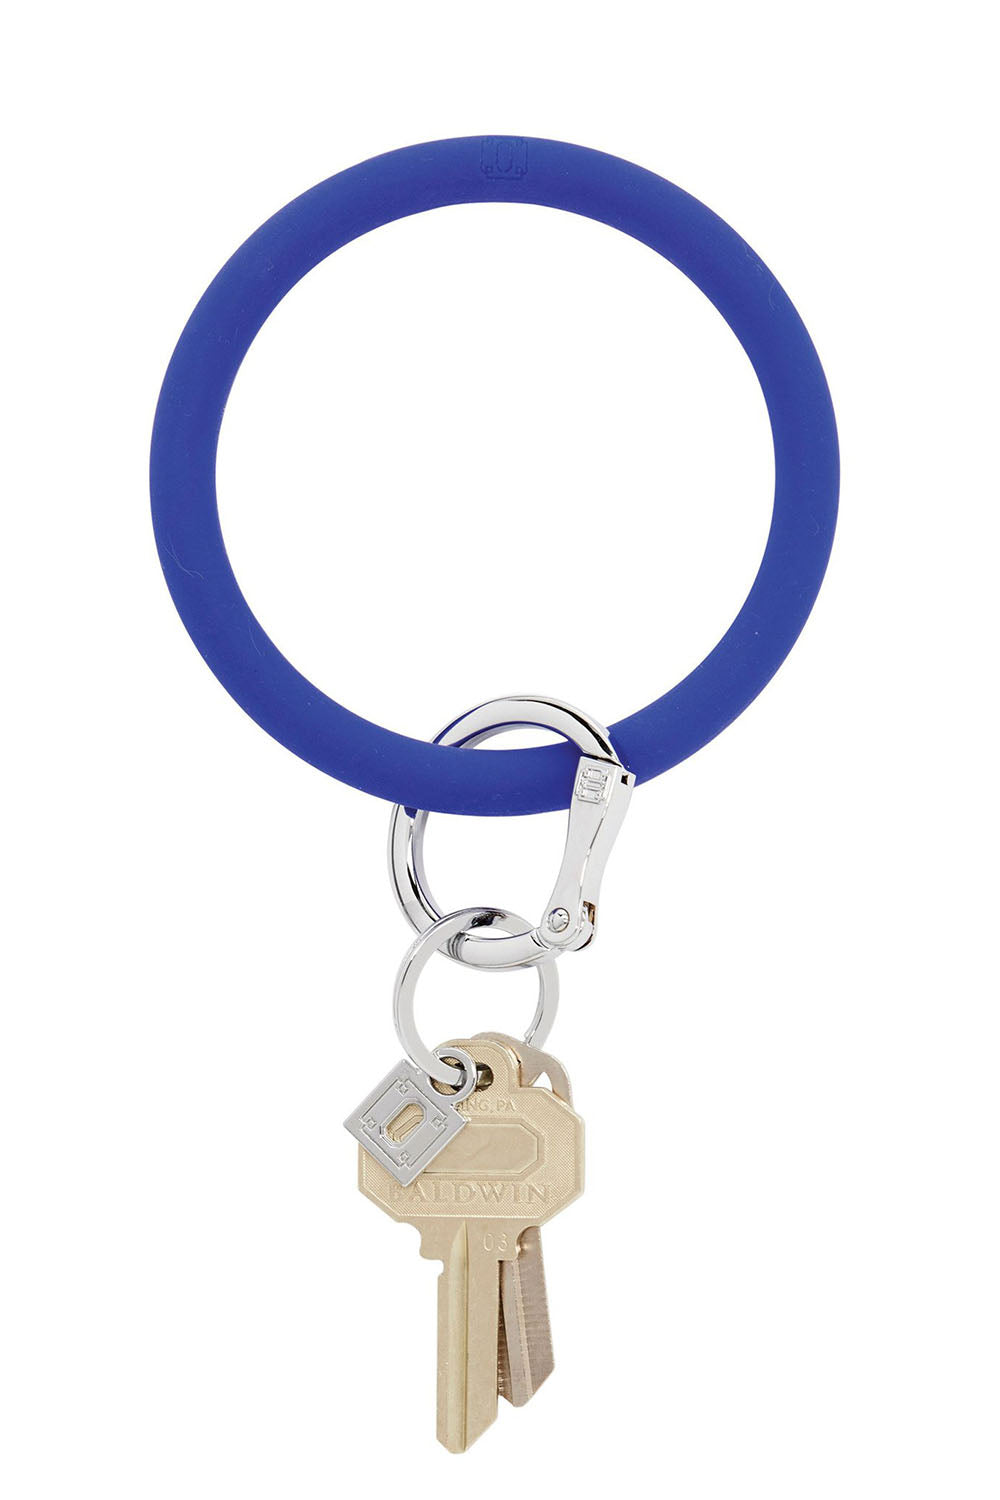 The BIG O Key Ring *Silicone* - Blue Me Away